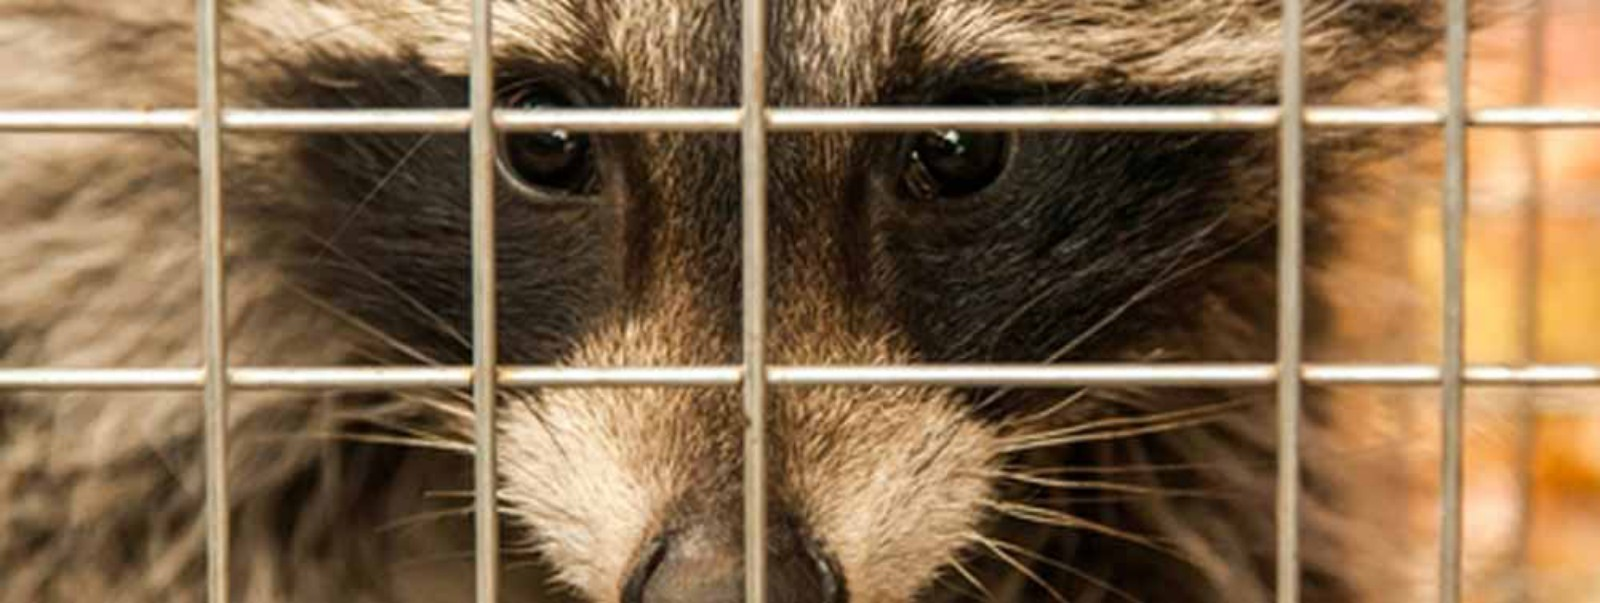 Al's Raccoons Capture and Relocation